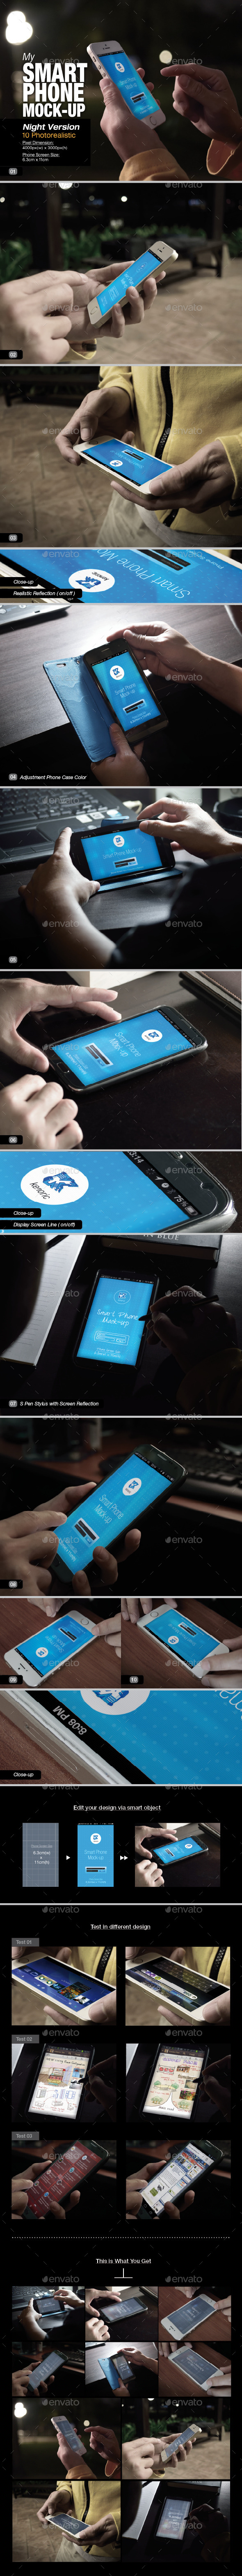 GraphicRiver Smart Phone Mock-Up 01 8907158